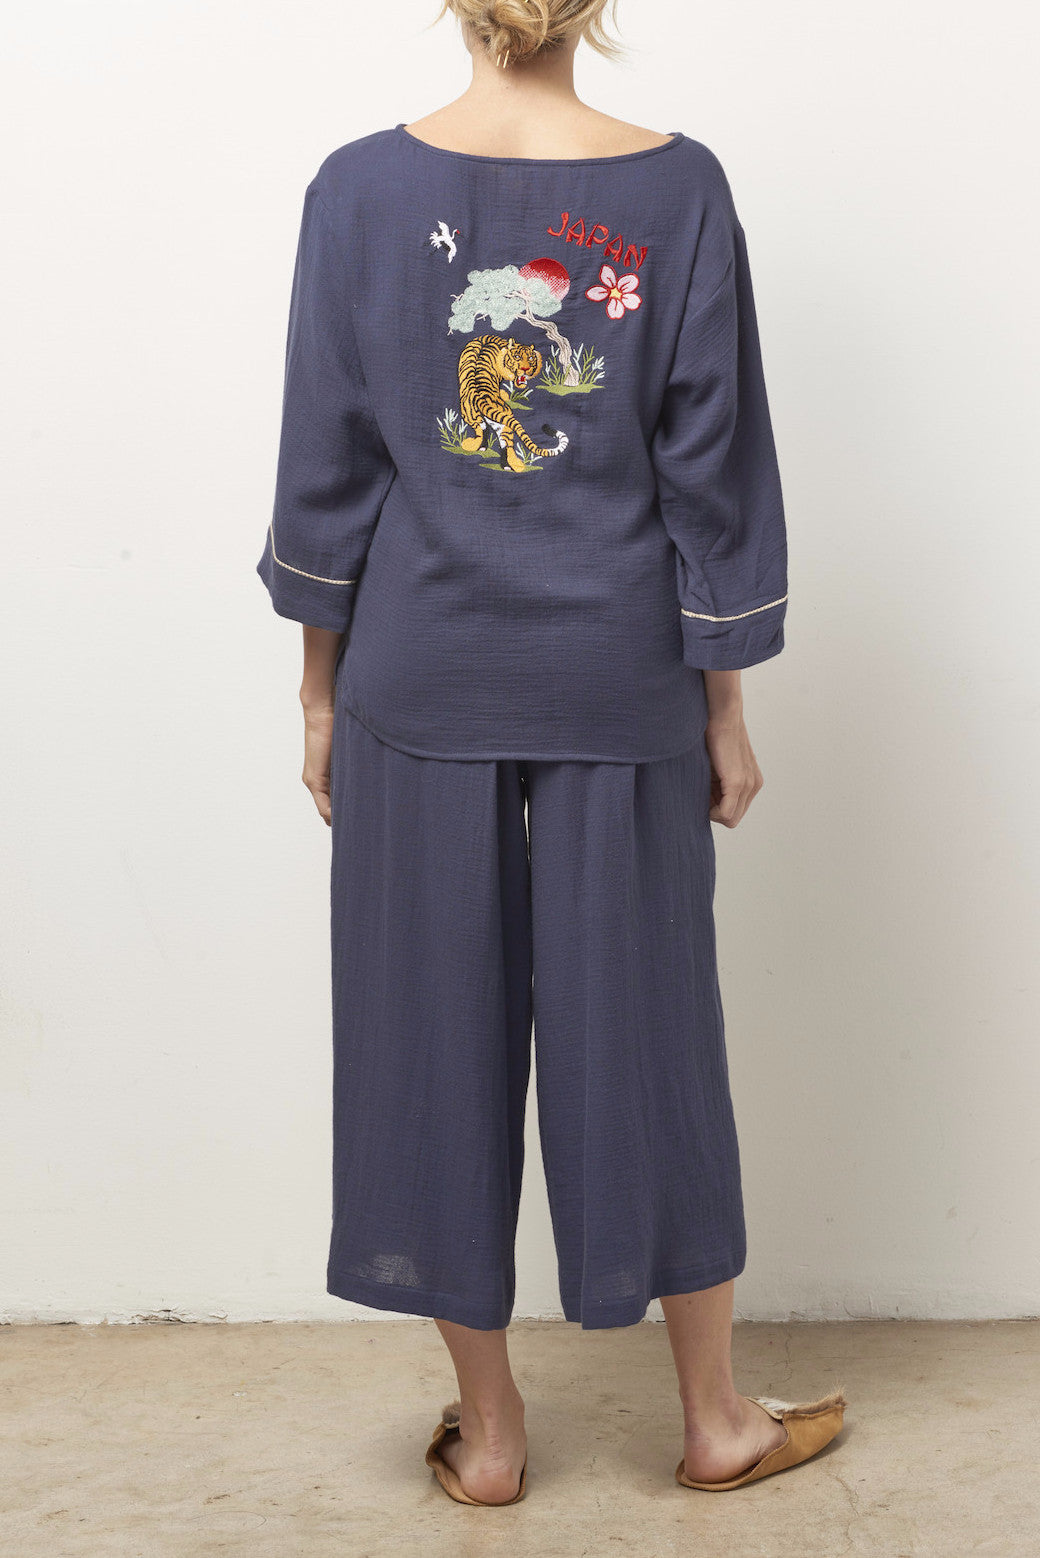 STACEY Silk Souvenir Pajama Set with Embroidered Tiger/Japan